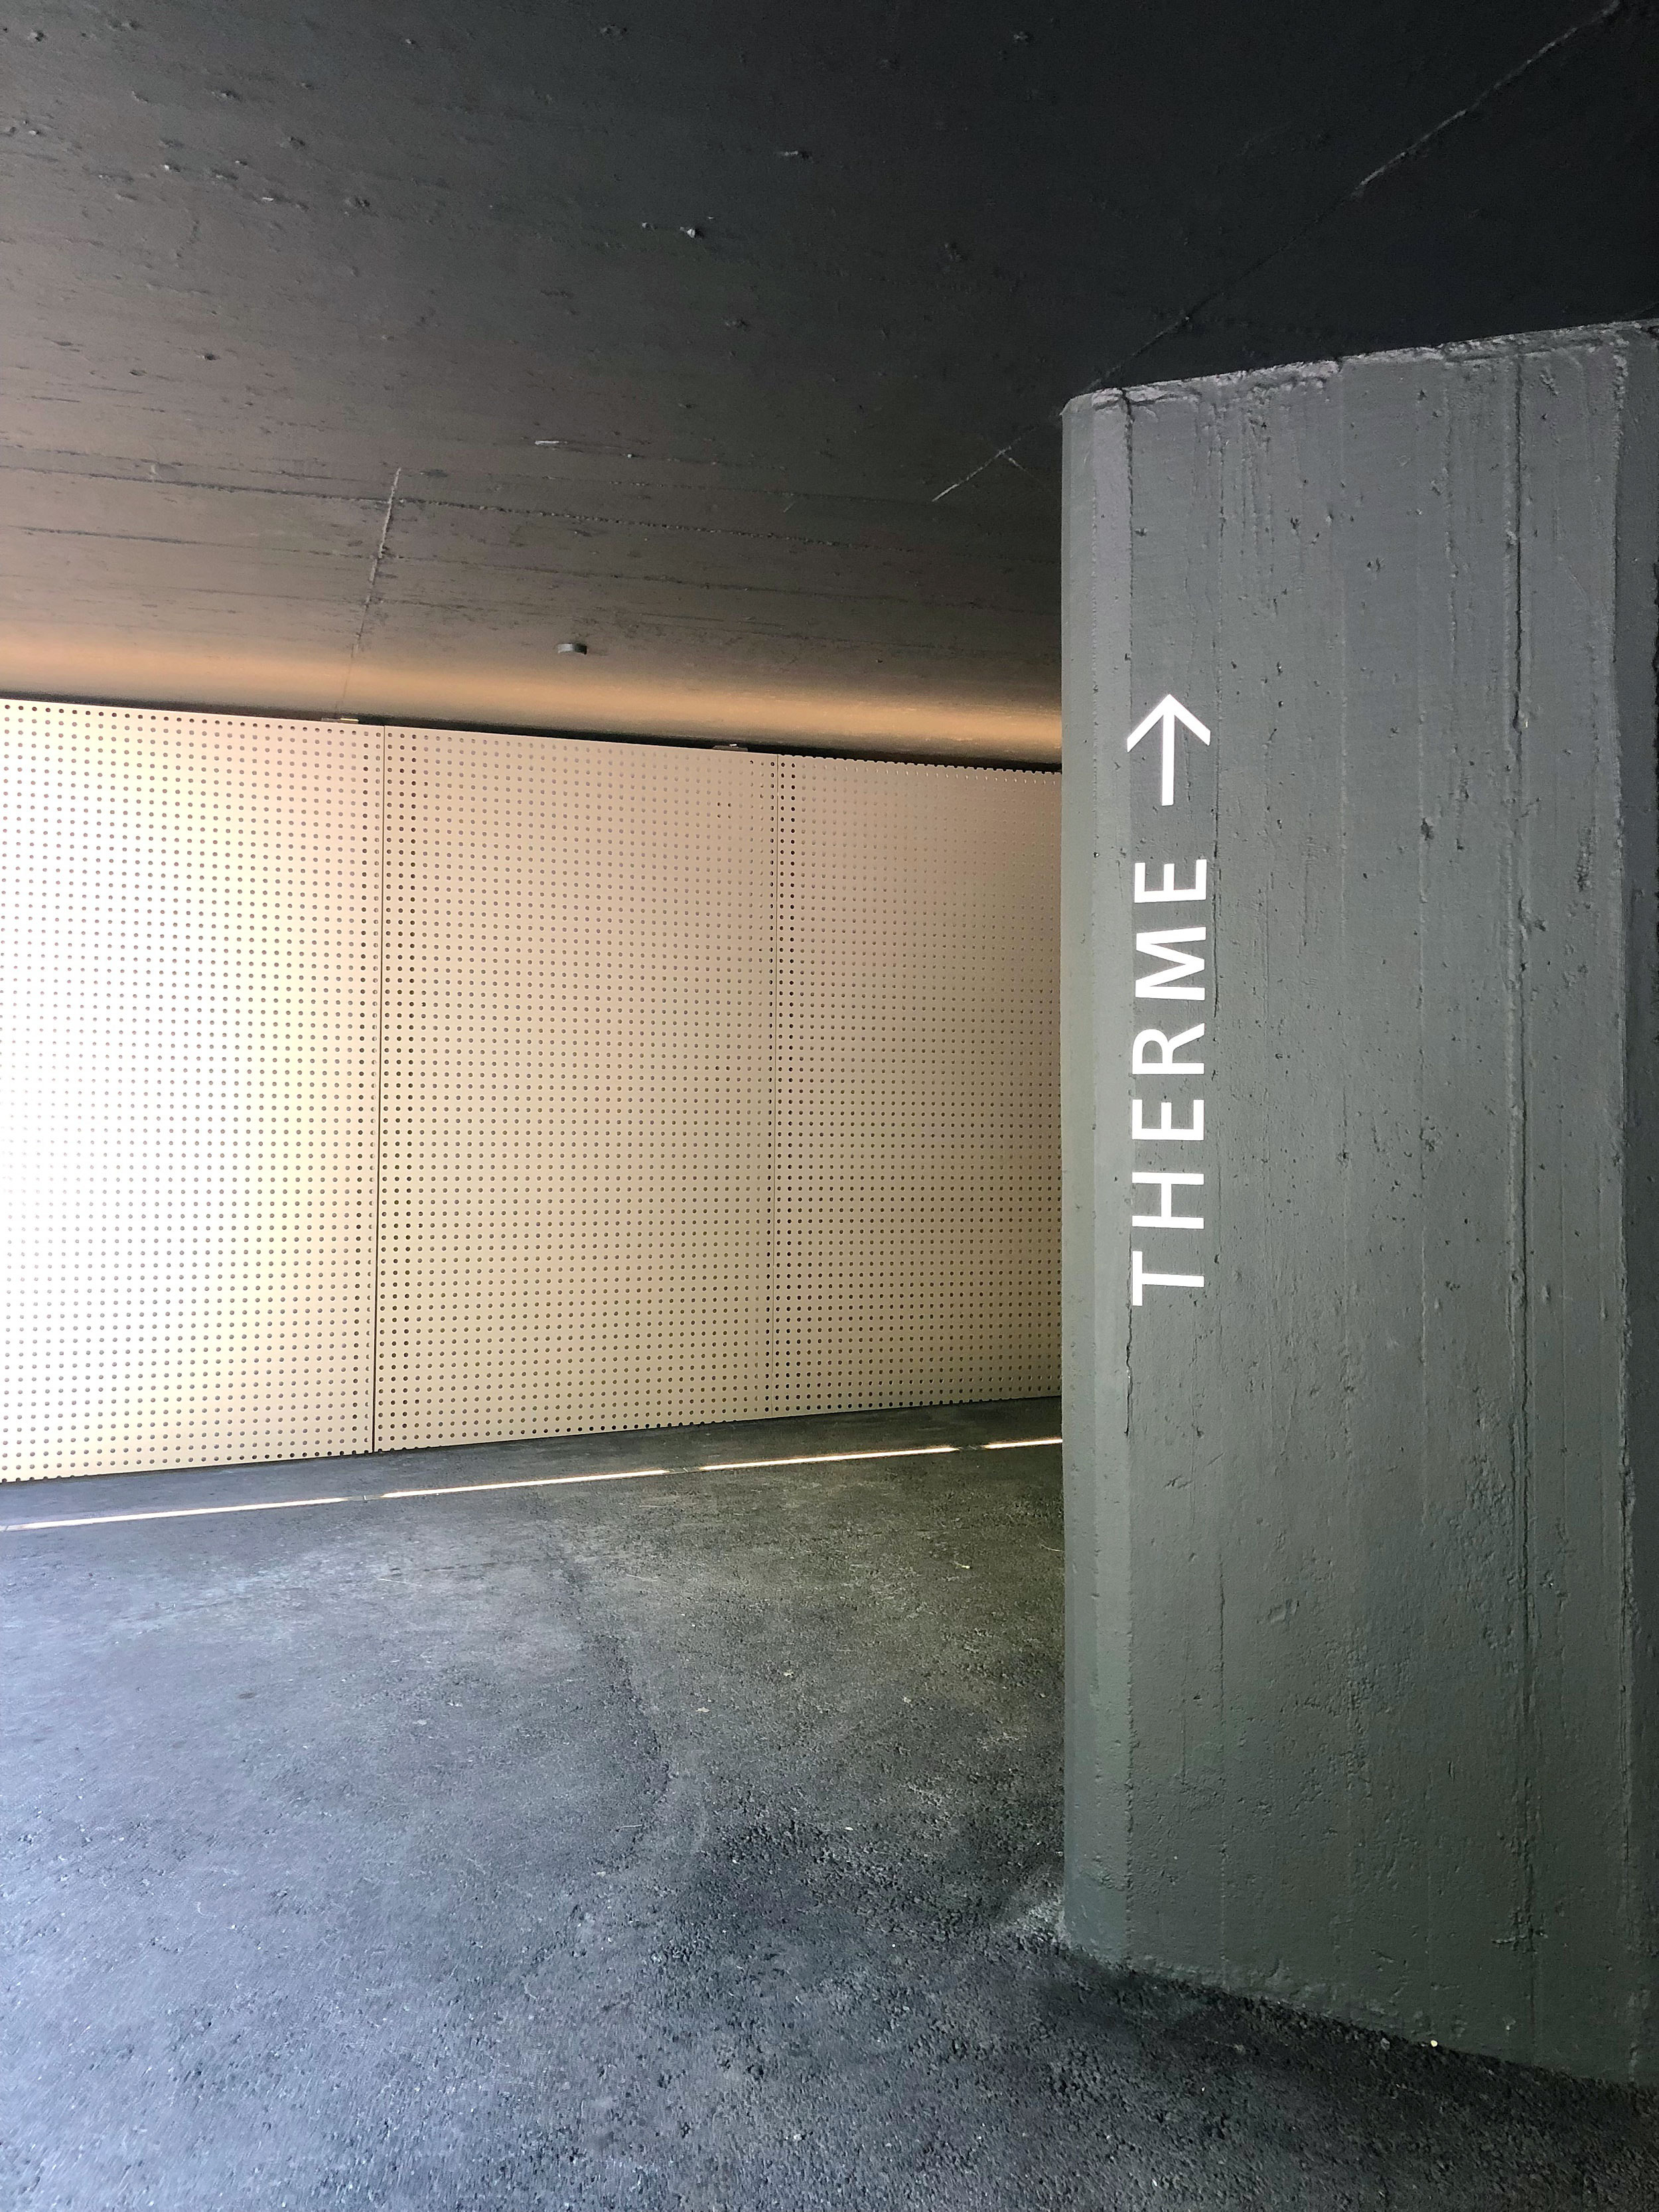 therme-entry-from-exterior.jpg